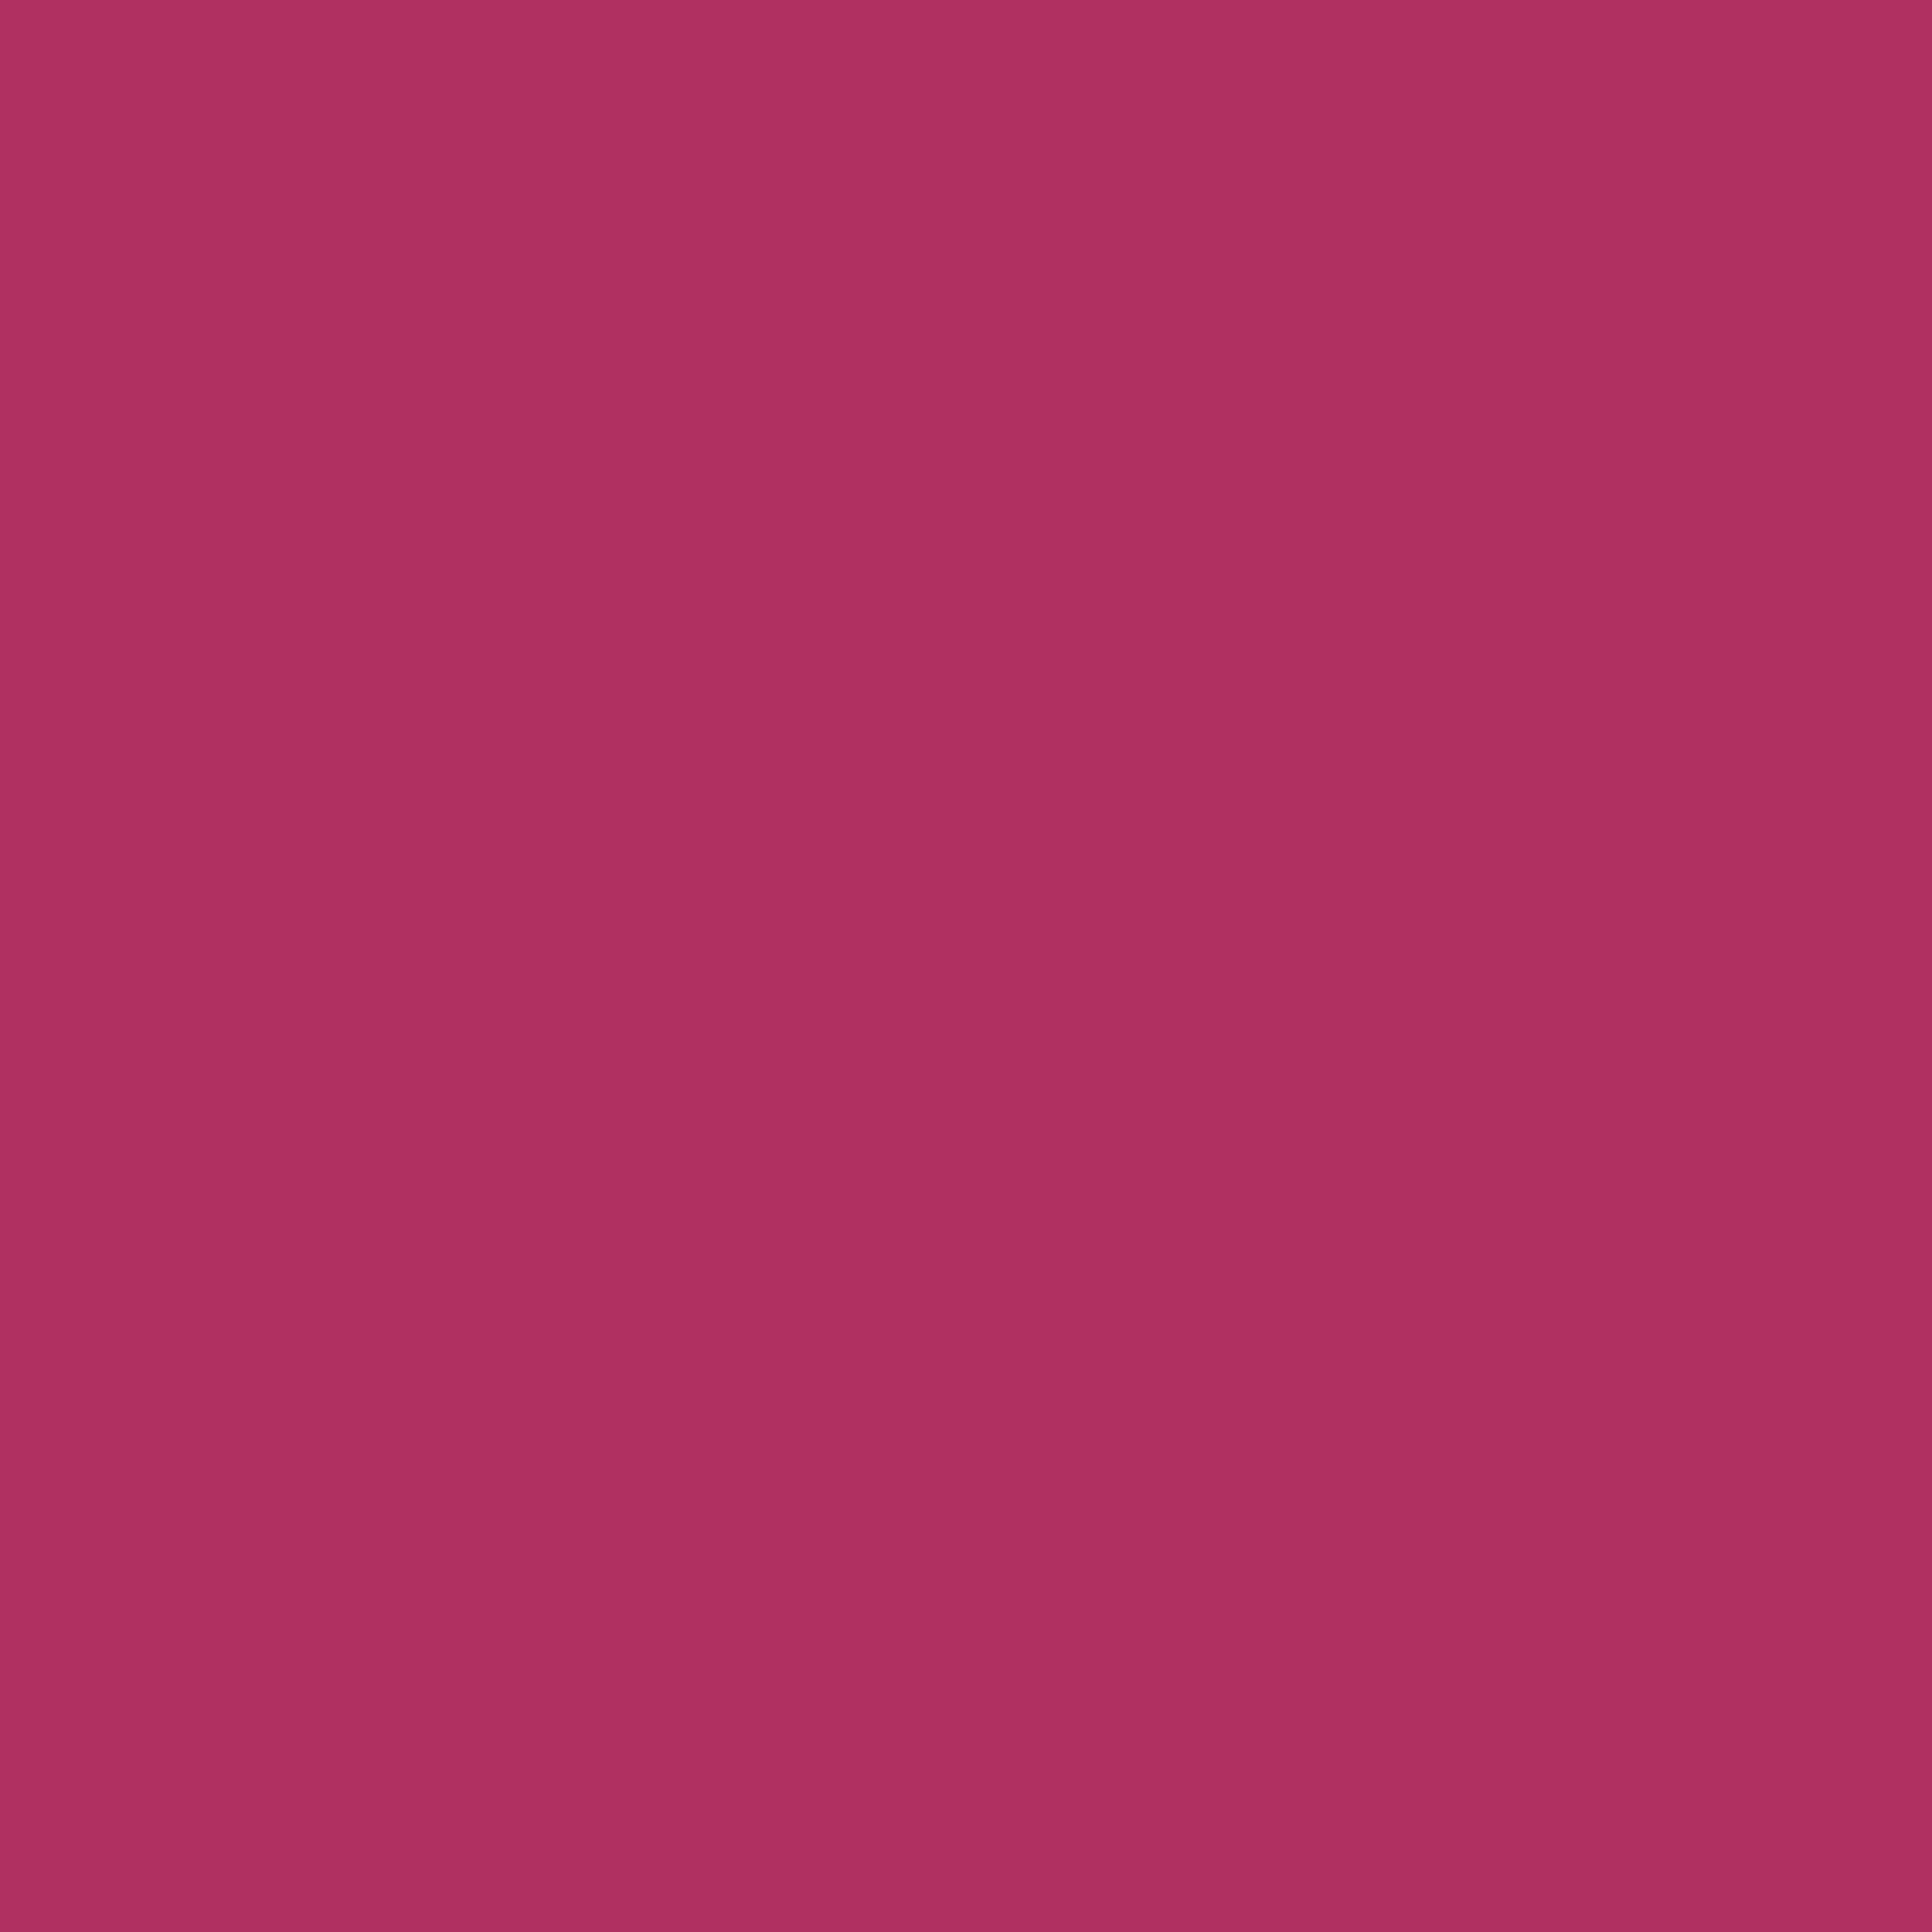 2048x2048 Rich Maroon Solid Color Background